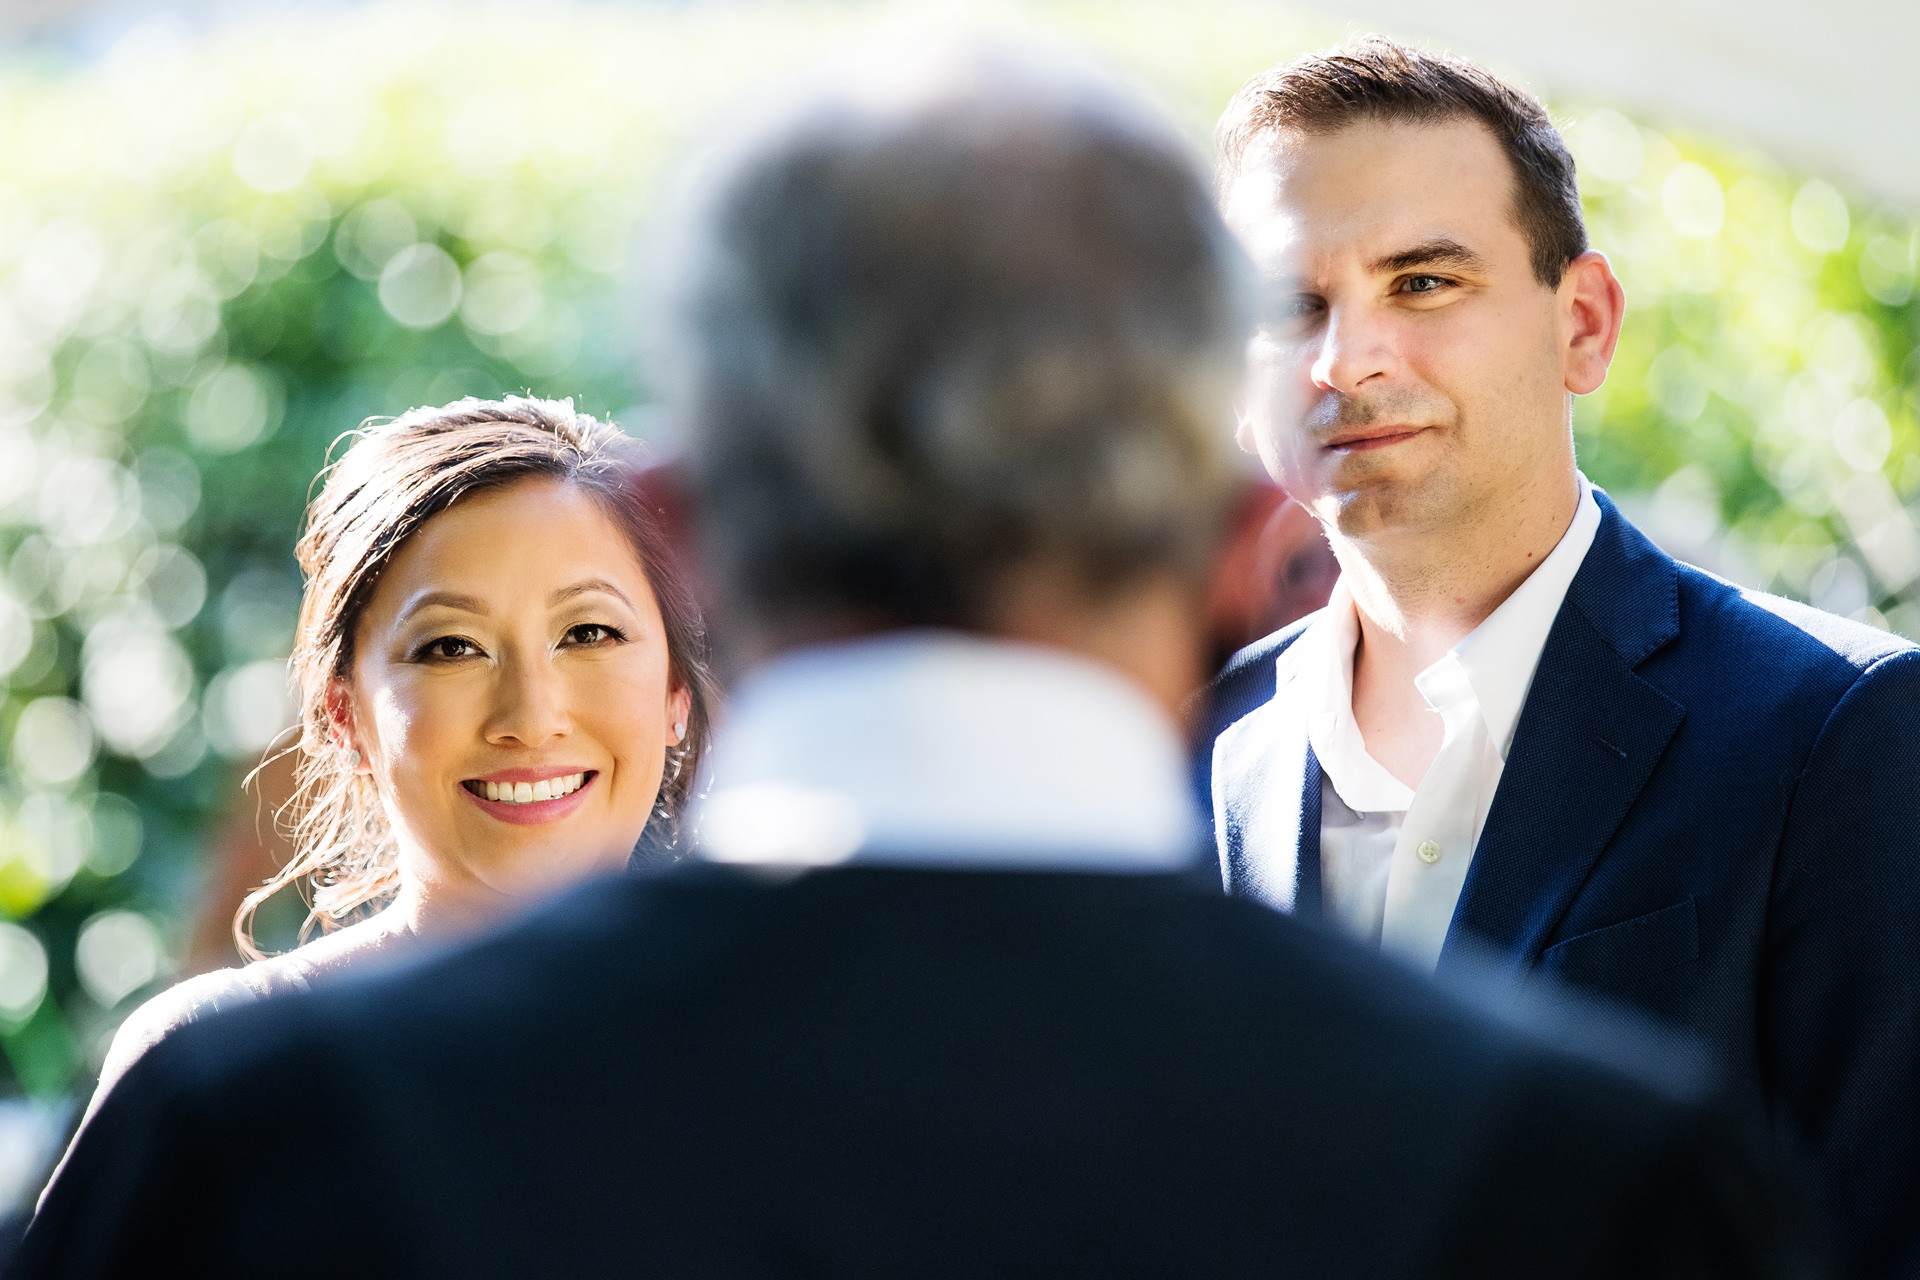 Elope in New Jersey and The Jersey Shore | The couple listens to the Judge during the backyard wedding ceremony